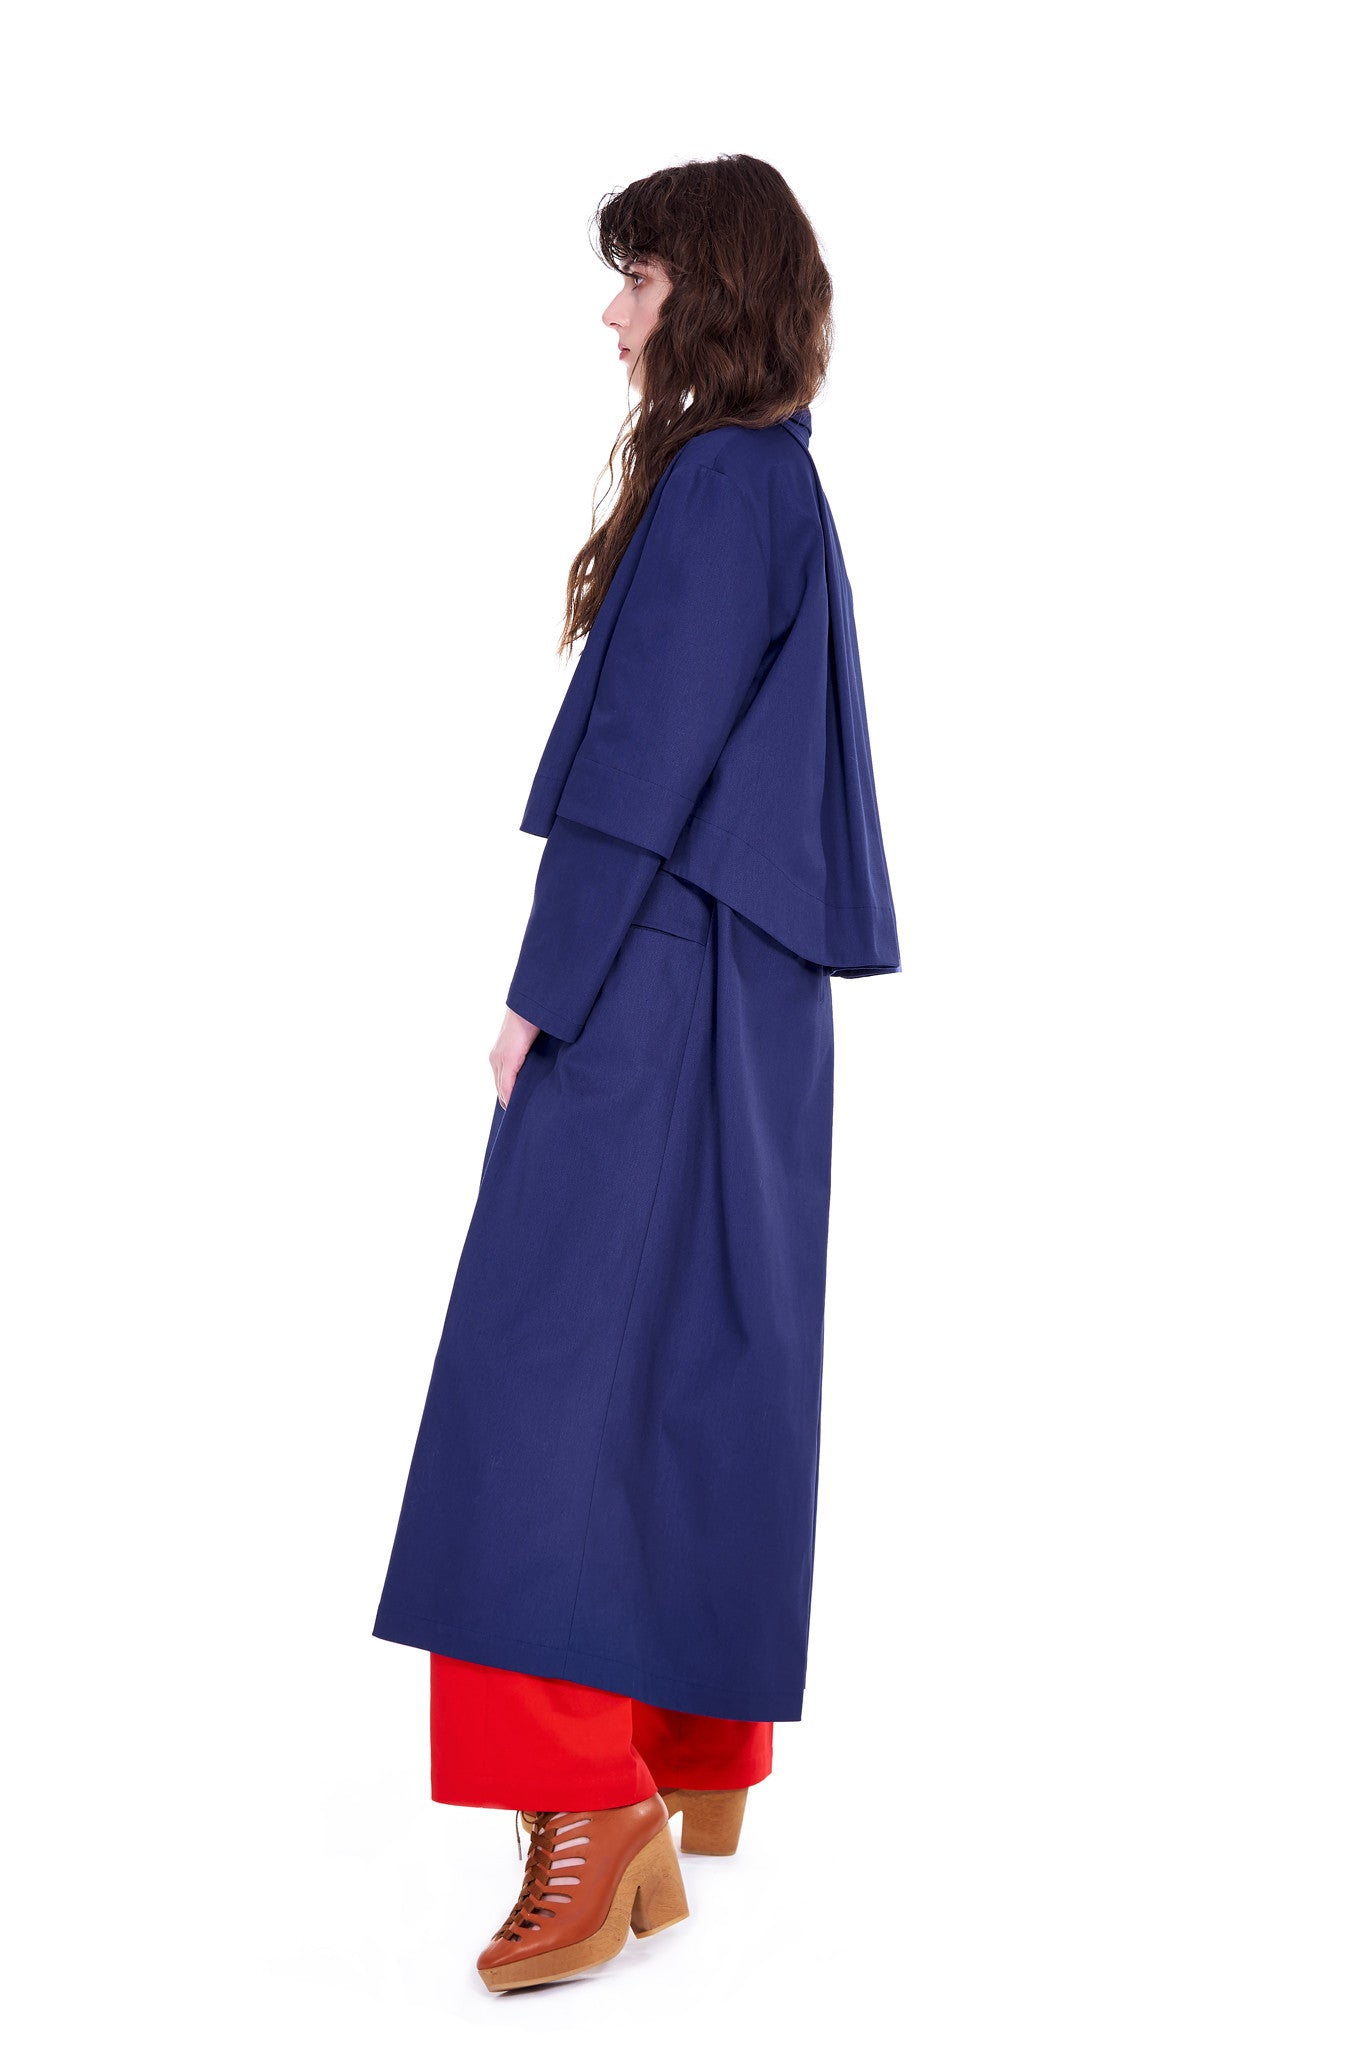 plaszcz niebieski oversize blue navy coat side